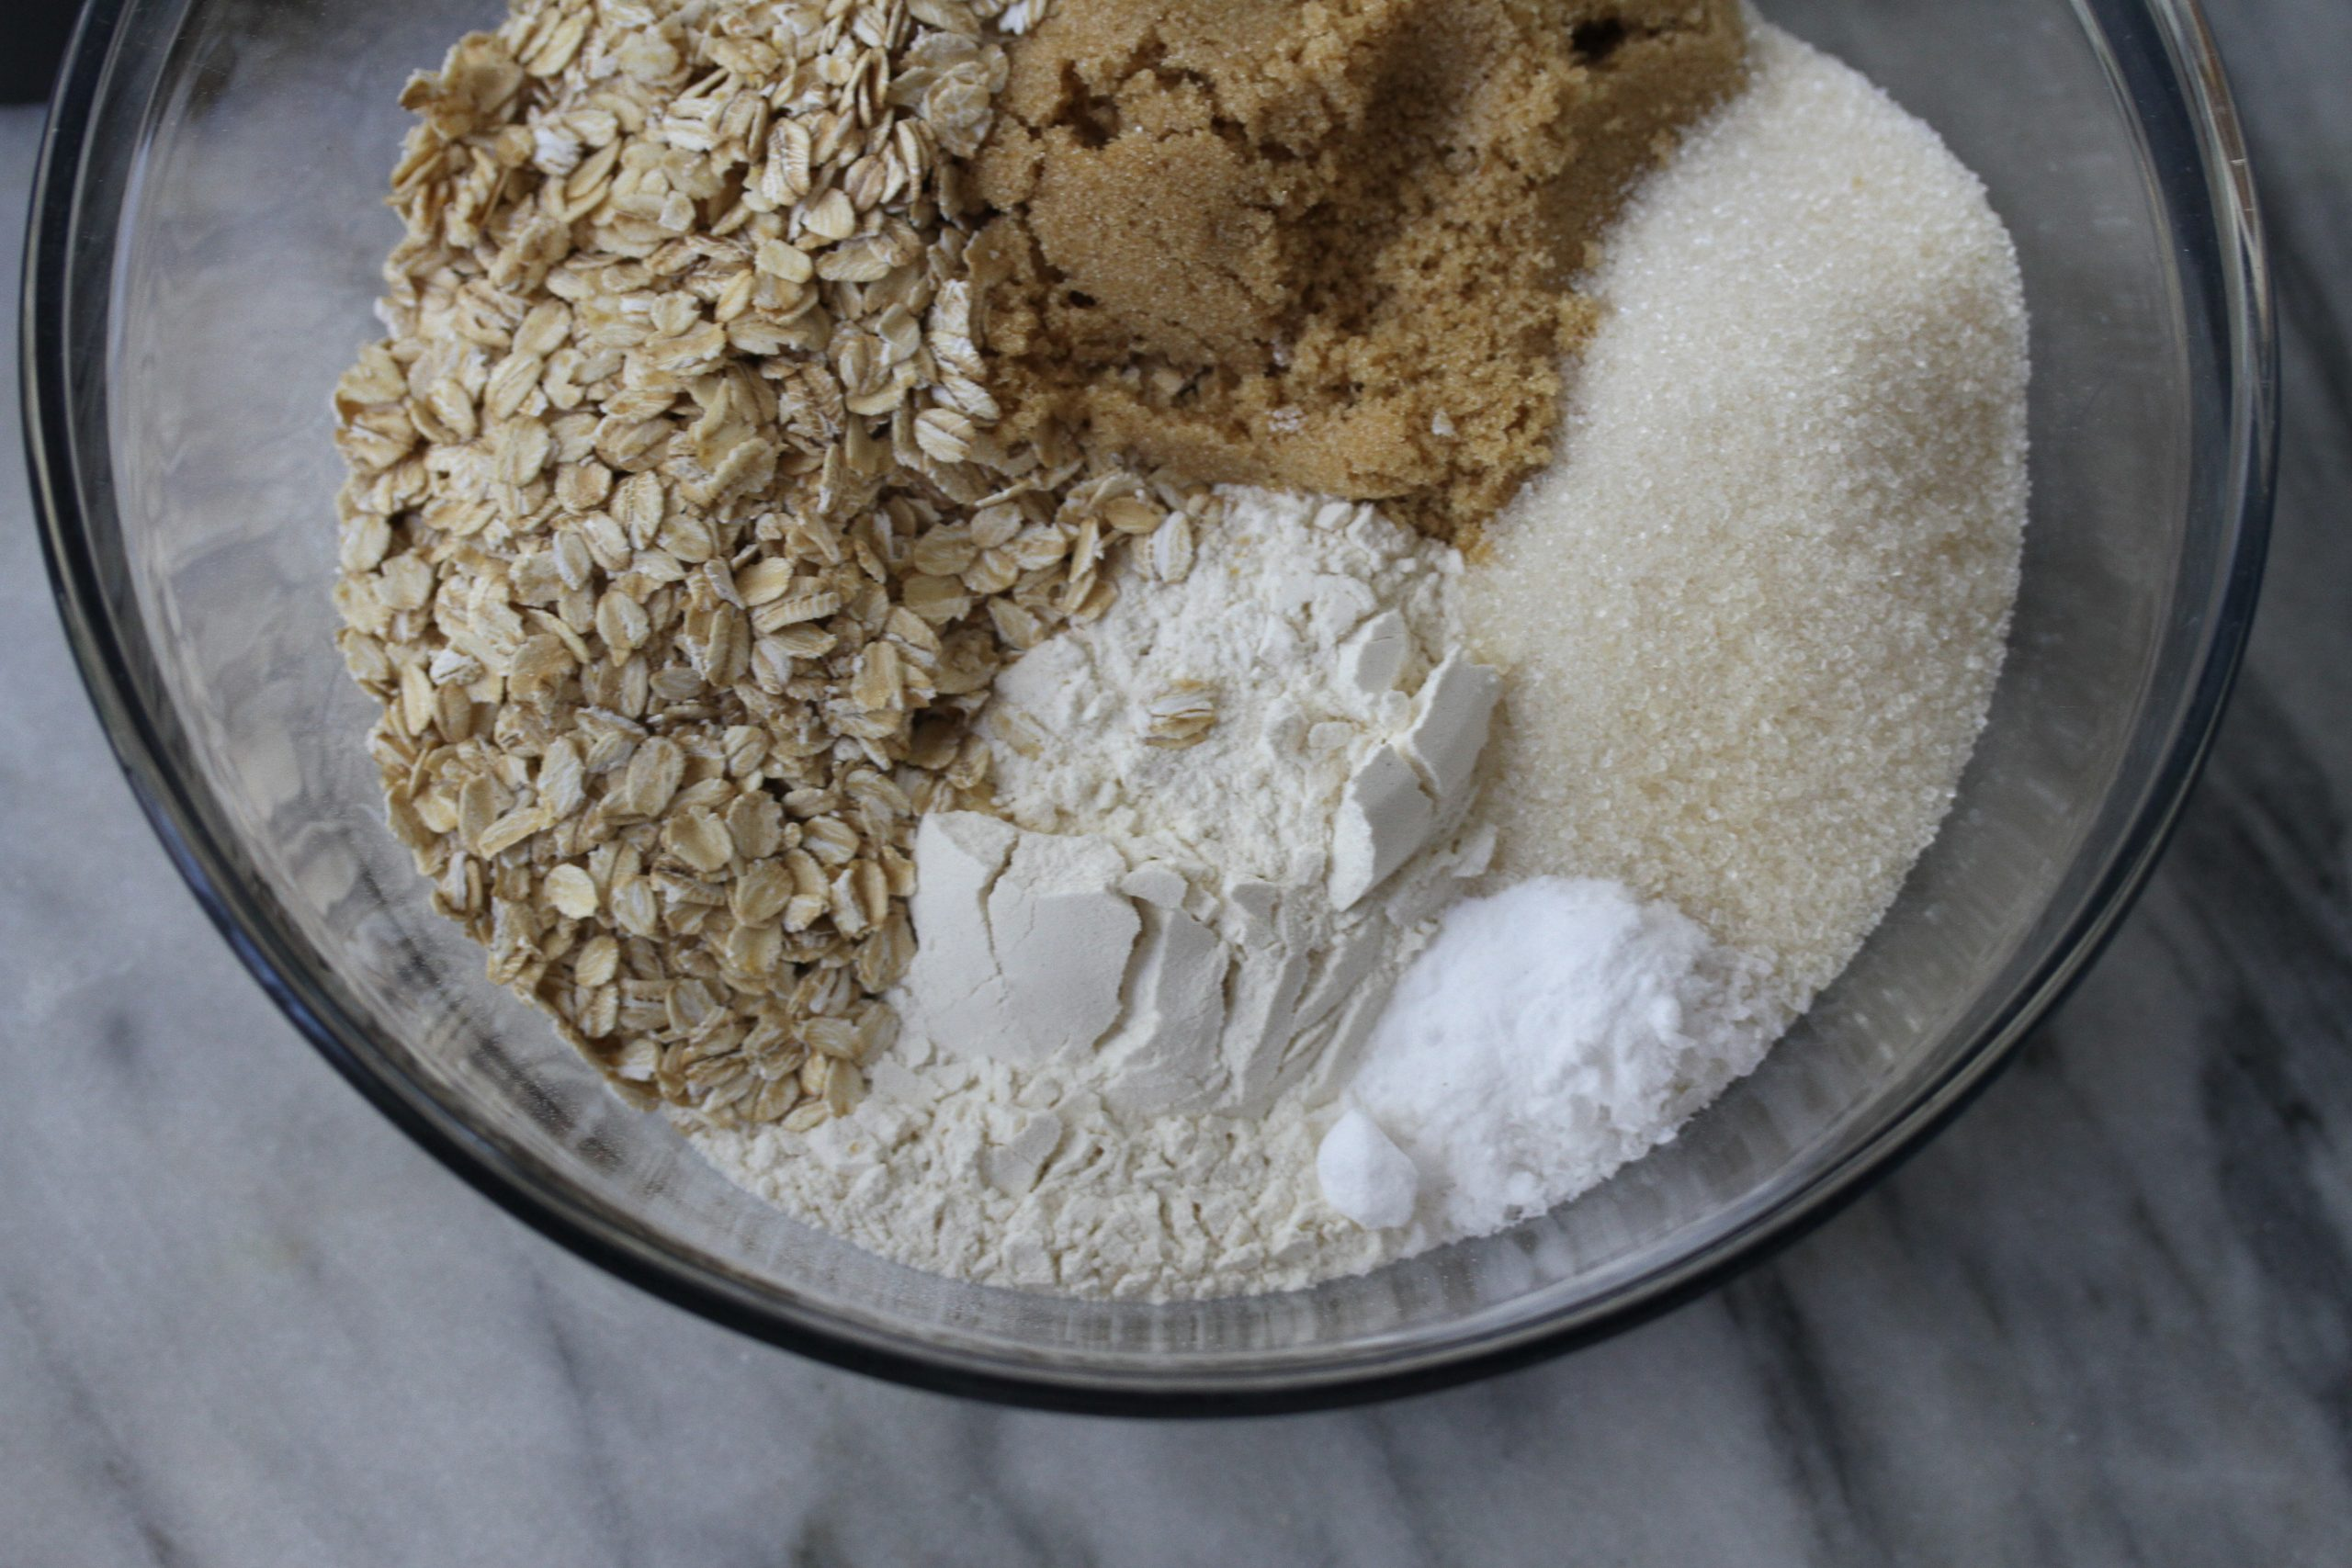 vegan oatmeal chocolate chip cookie ingredients